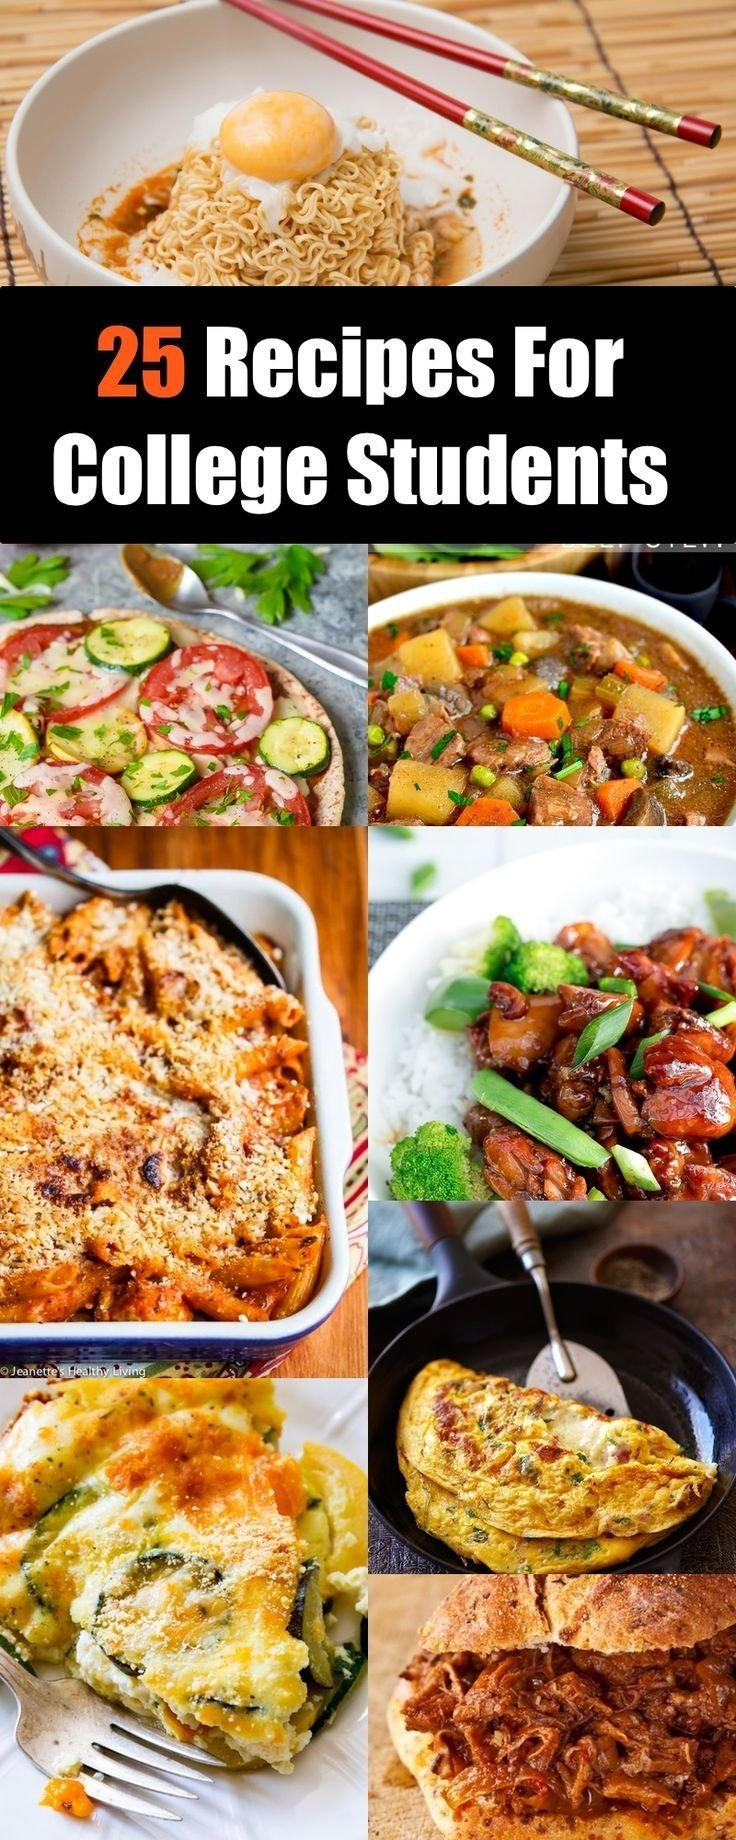 10 Amazing Cheap Meal Ideas For 4 2715 best college recipes images on pinterest kitchens rezepte 1 2021